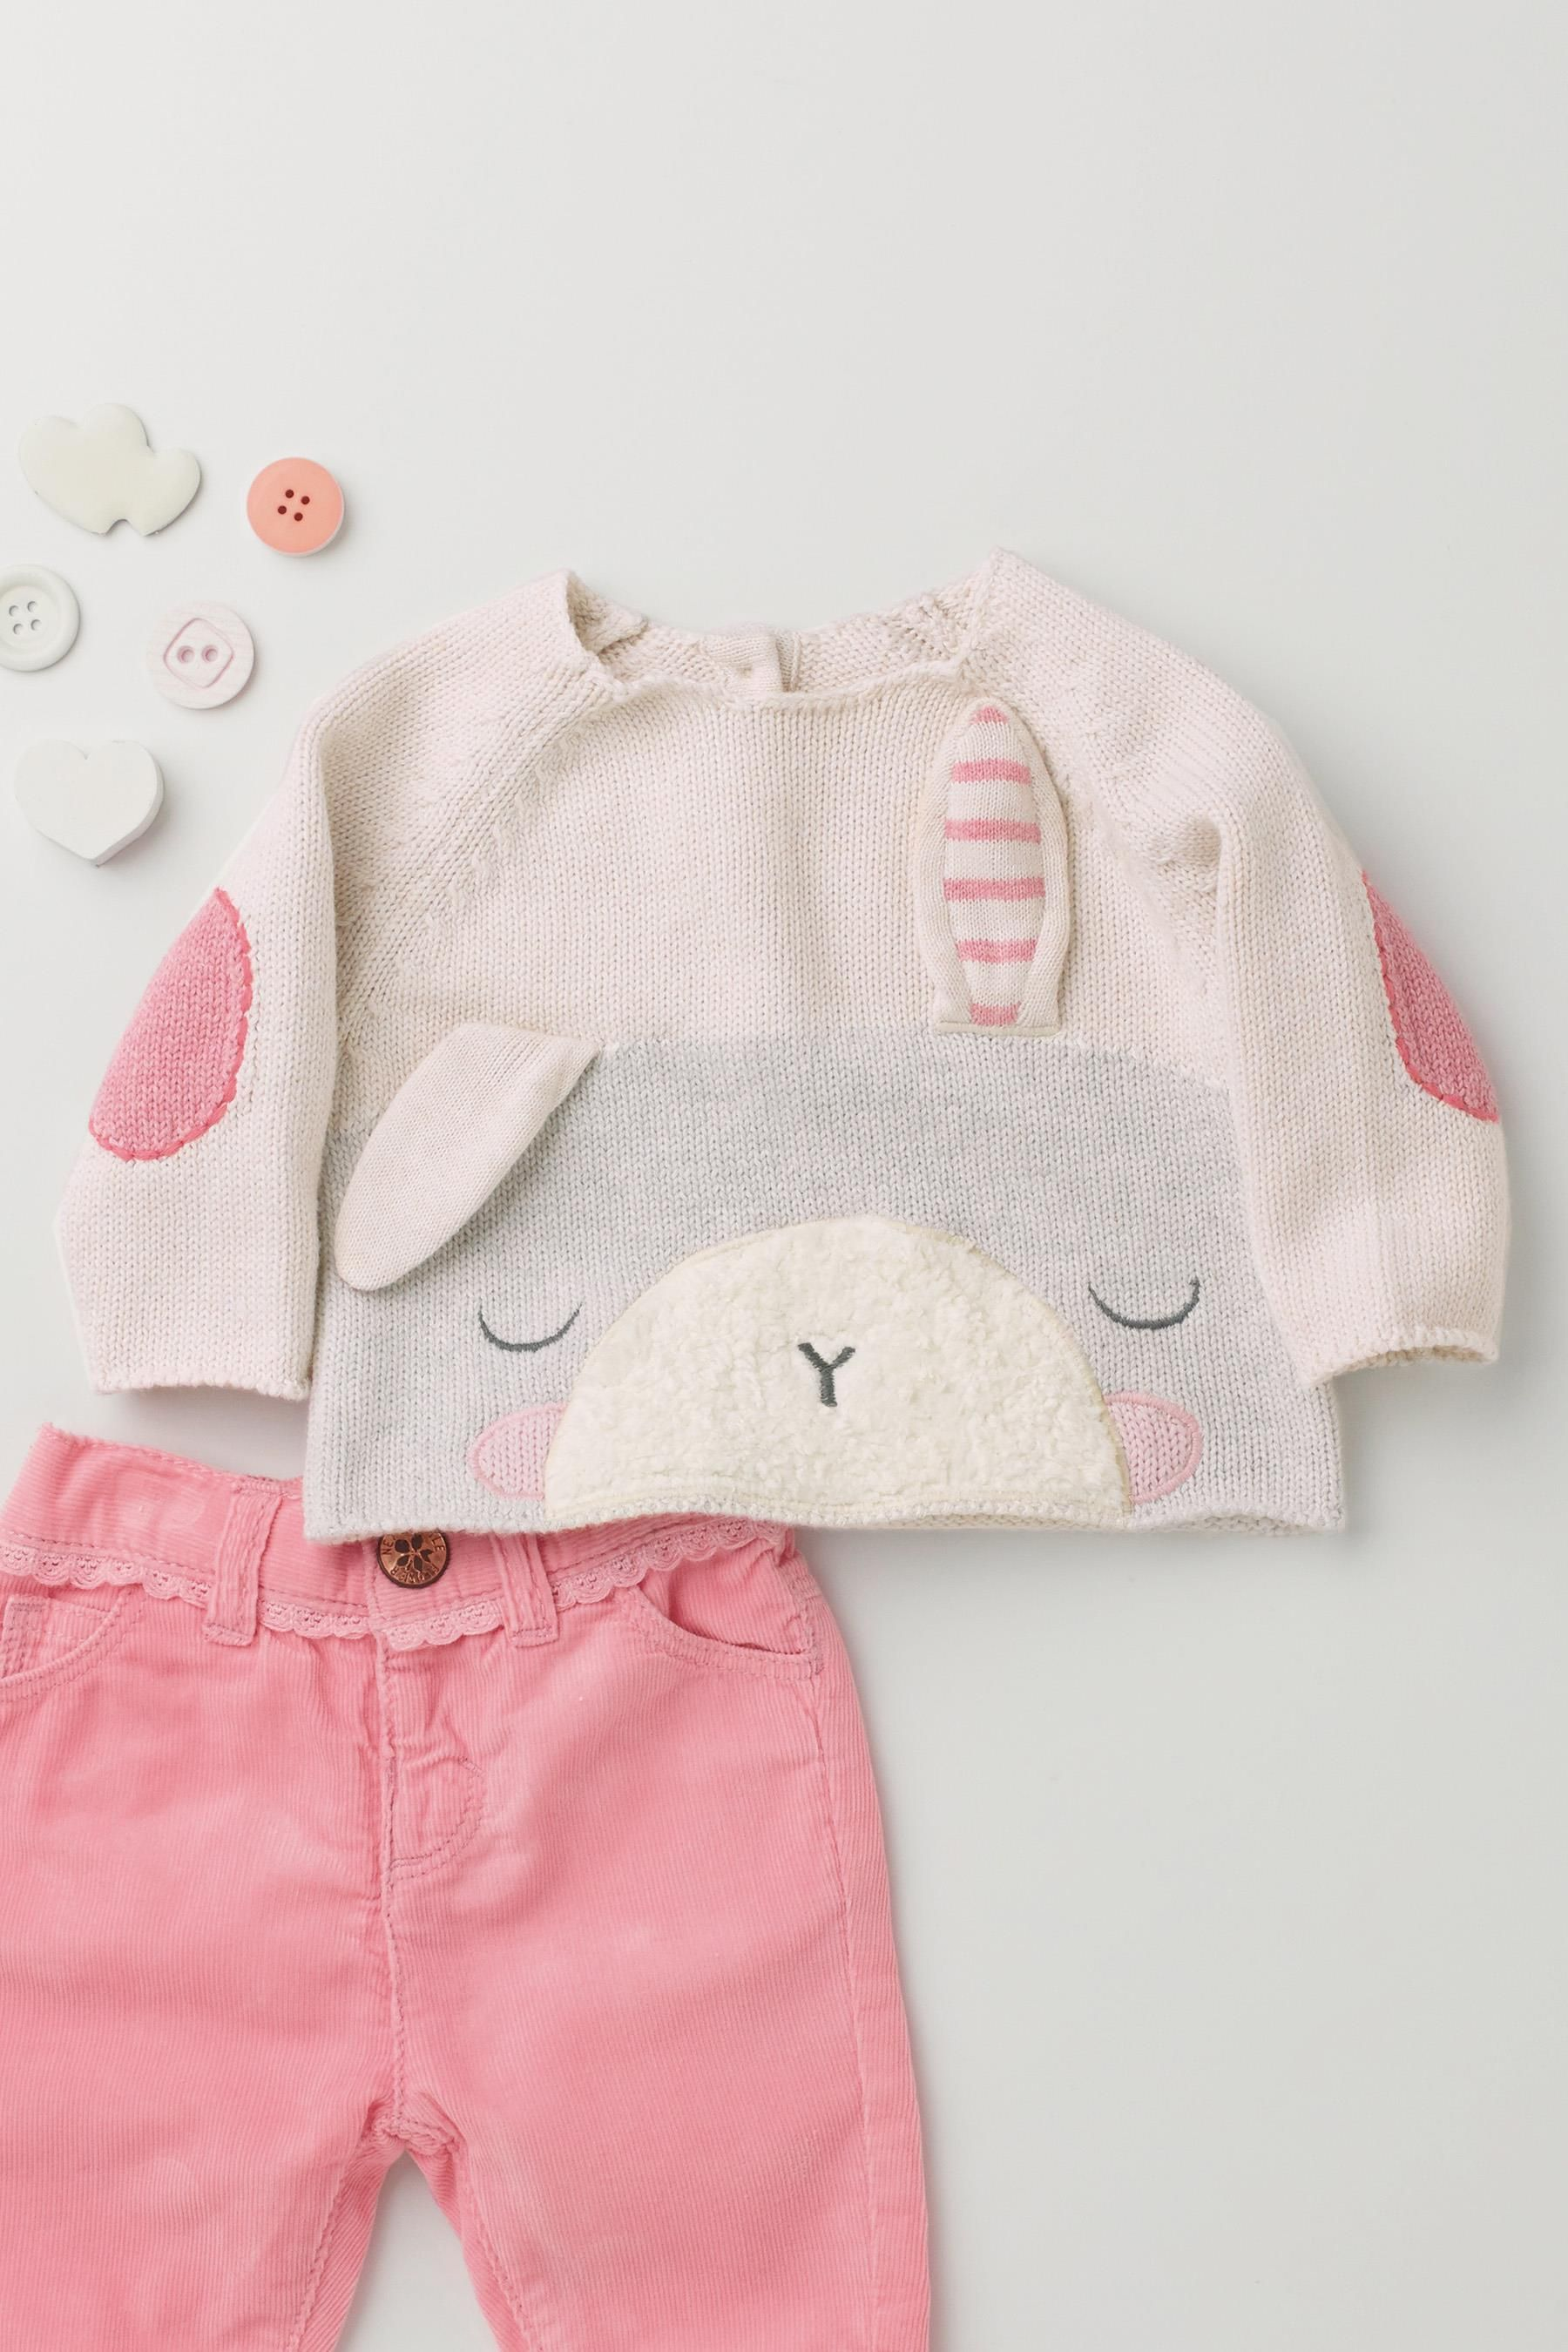 Buy Bunny Knit Jumper 0 18mths from the Next UK online shop